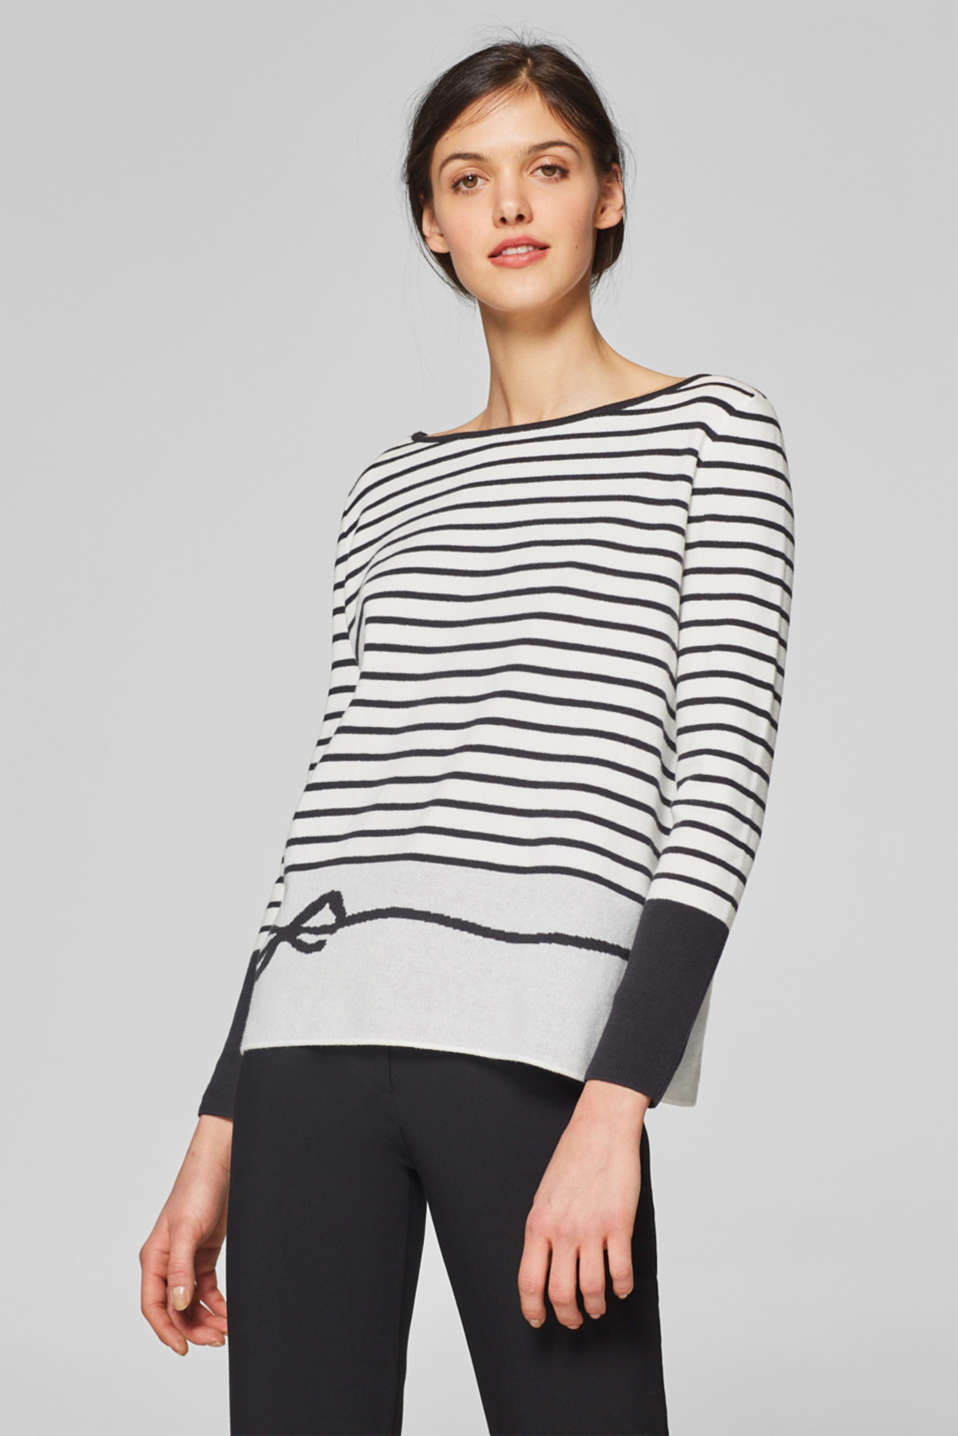 Esprit - Striped jumper with a button placket, 100% cotton